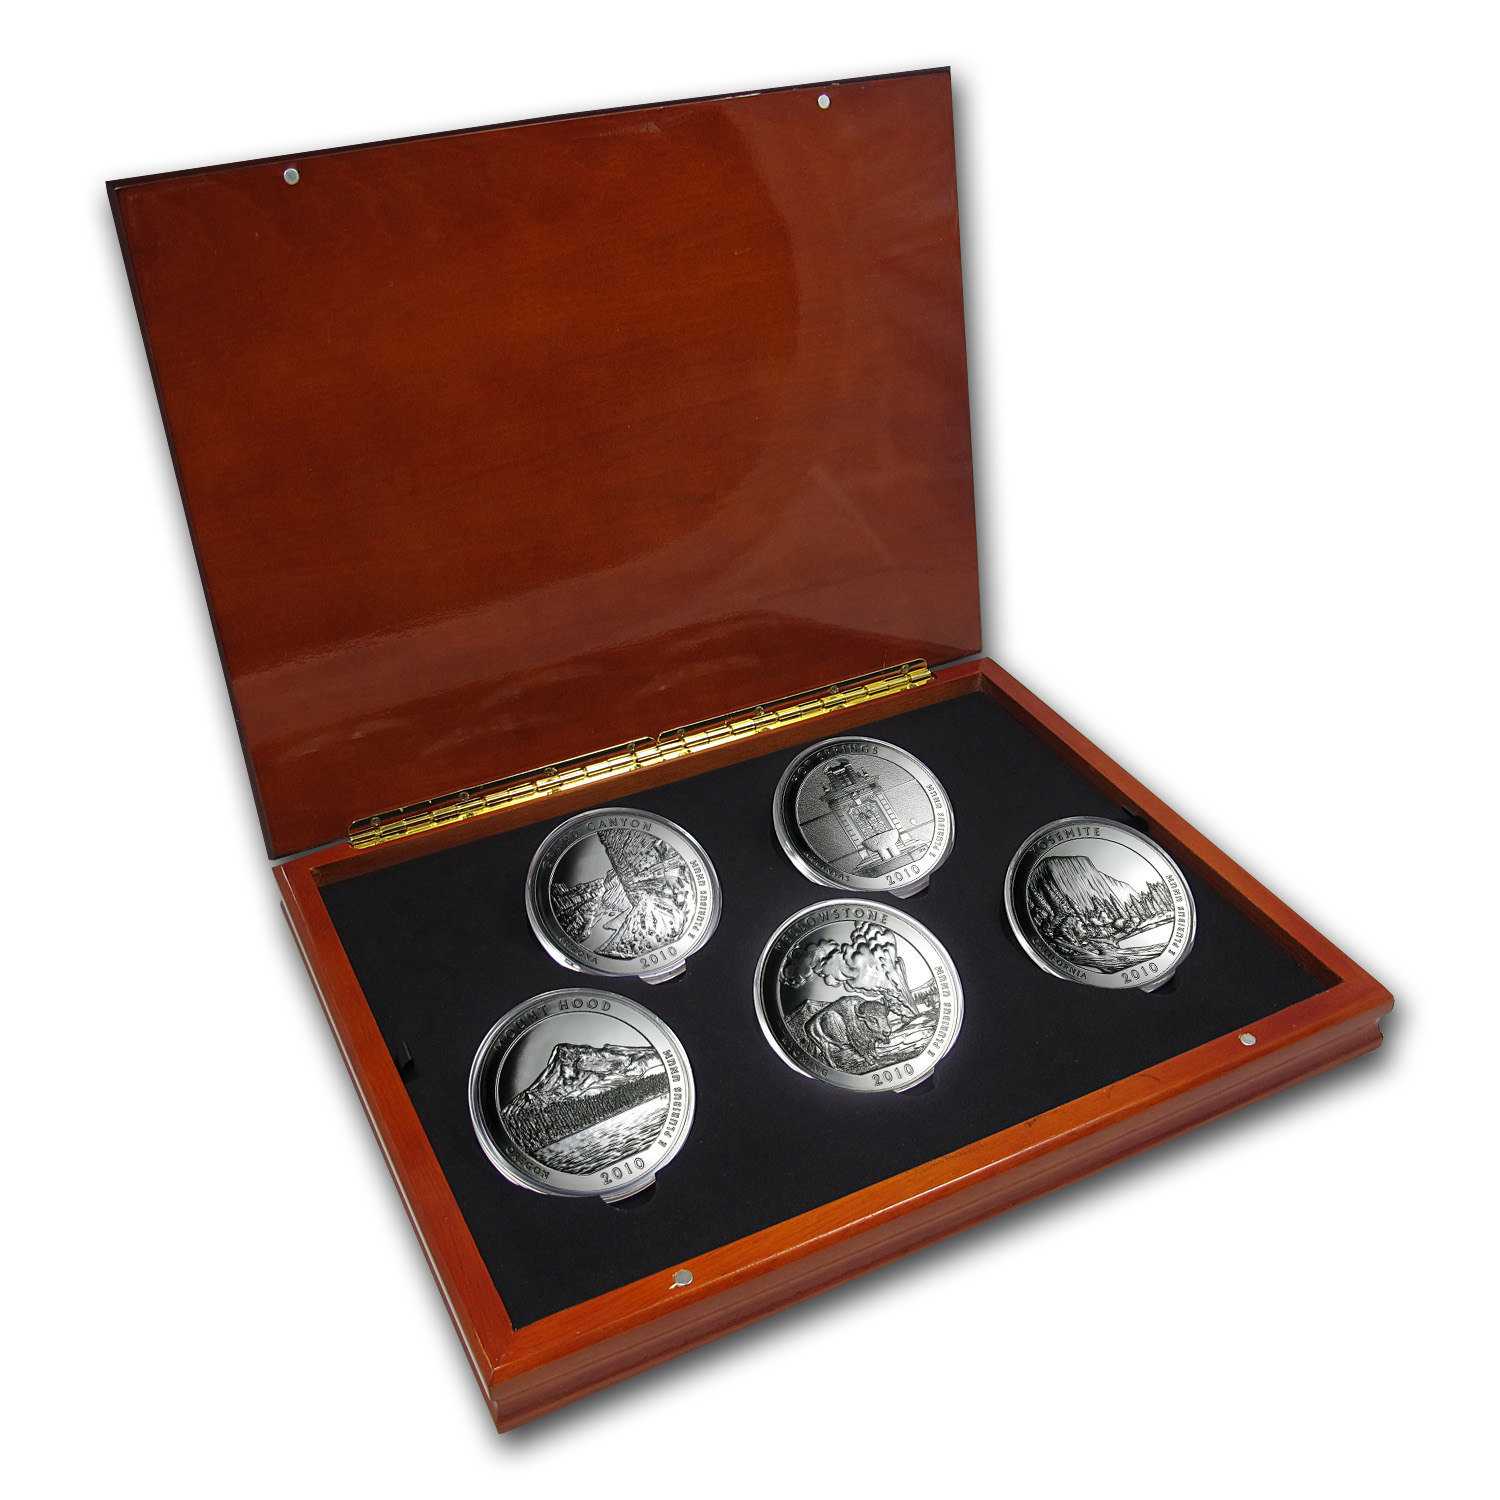 2010 5 oz Silver ATB 5-Coin Set in Elegant Display Box